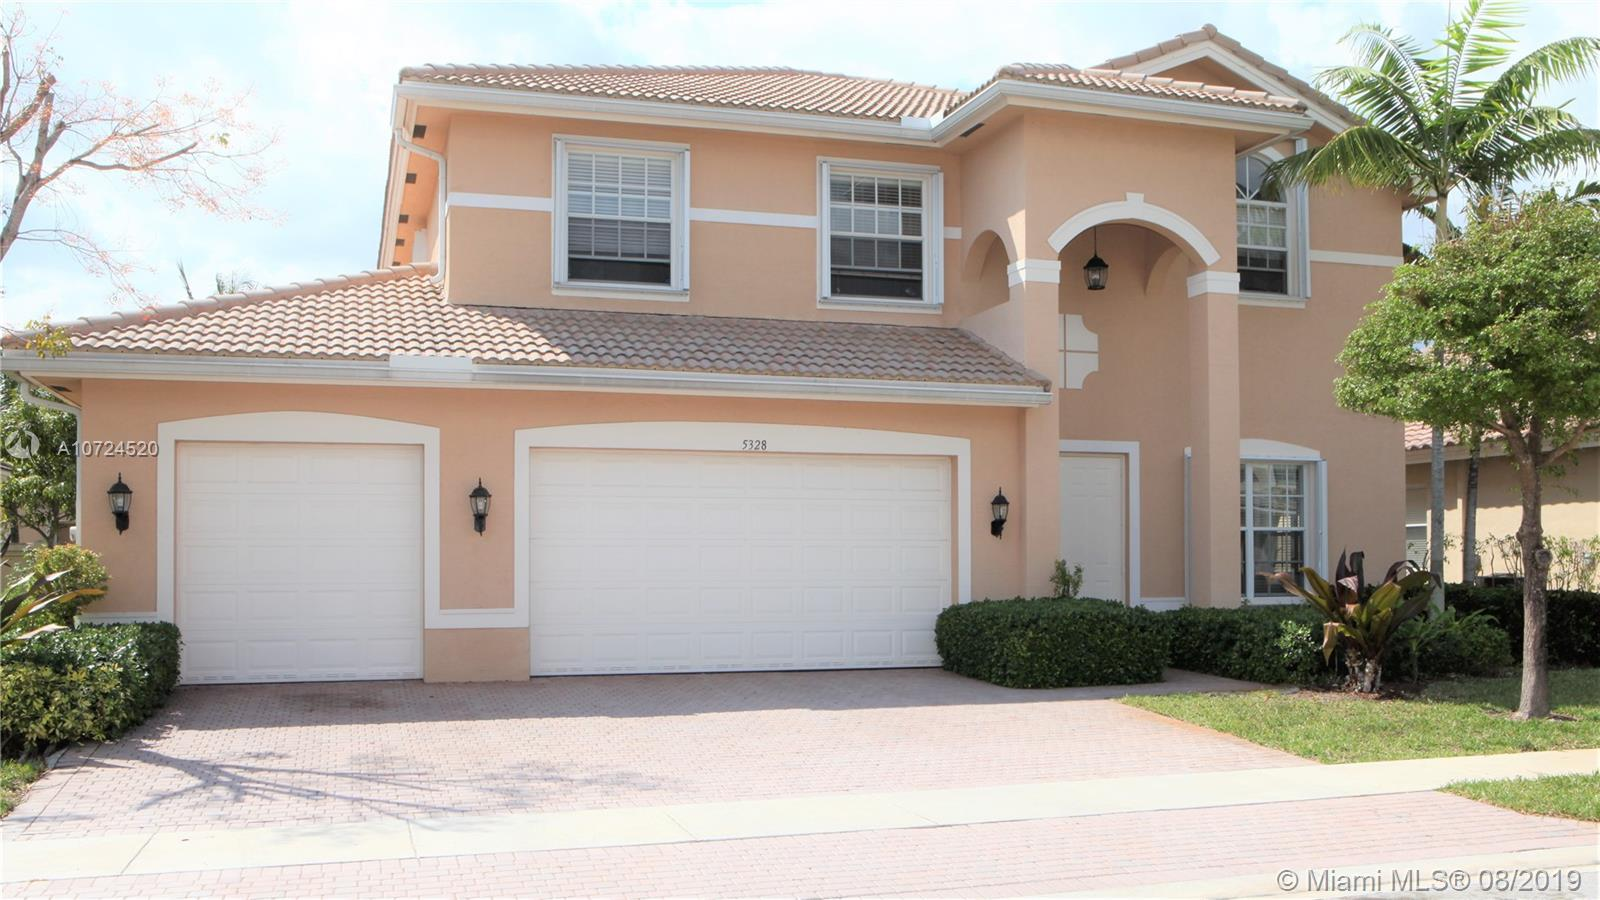 5328 SW 183rd Ave -0